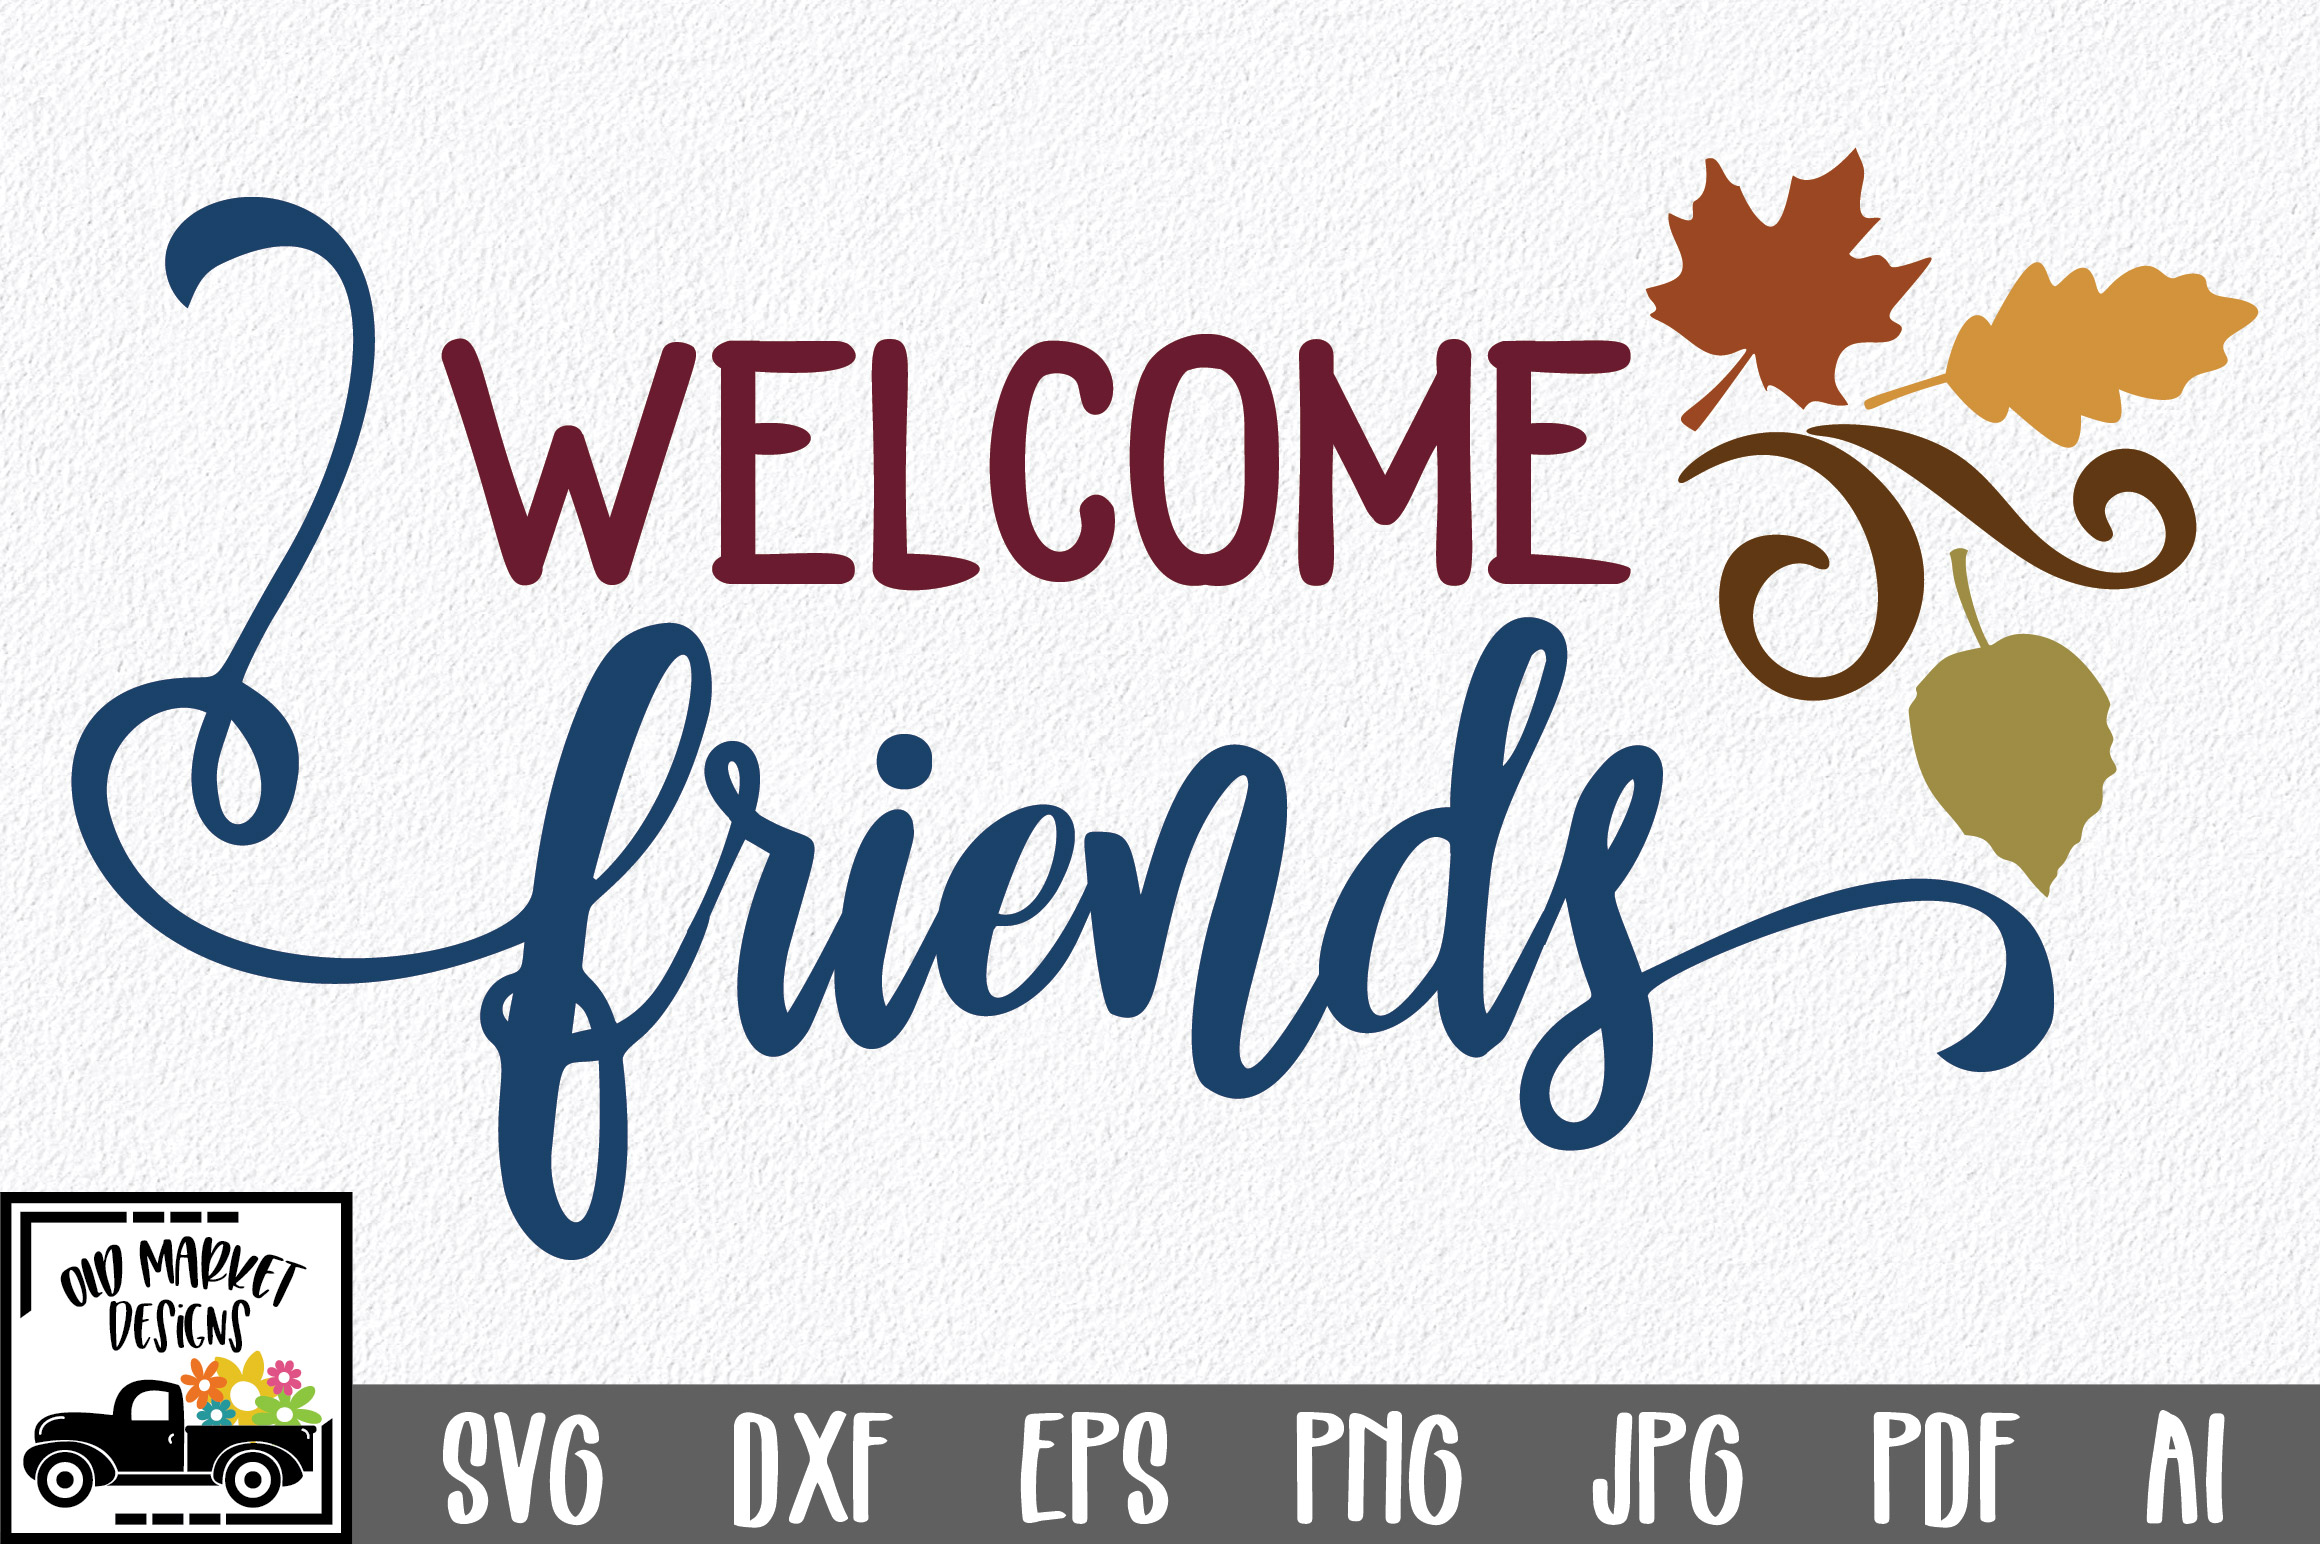 Download Free Welcome Friends Graphic By Oldmarketdesigns Creative Fabrica for Cricut Explore, Silhouette and other cutting machines.